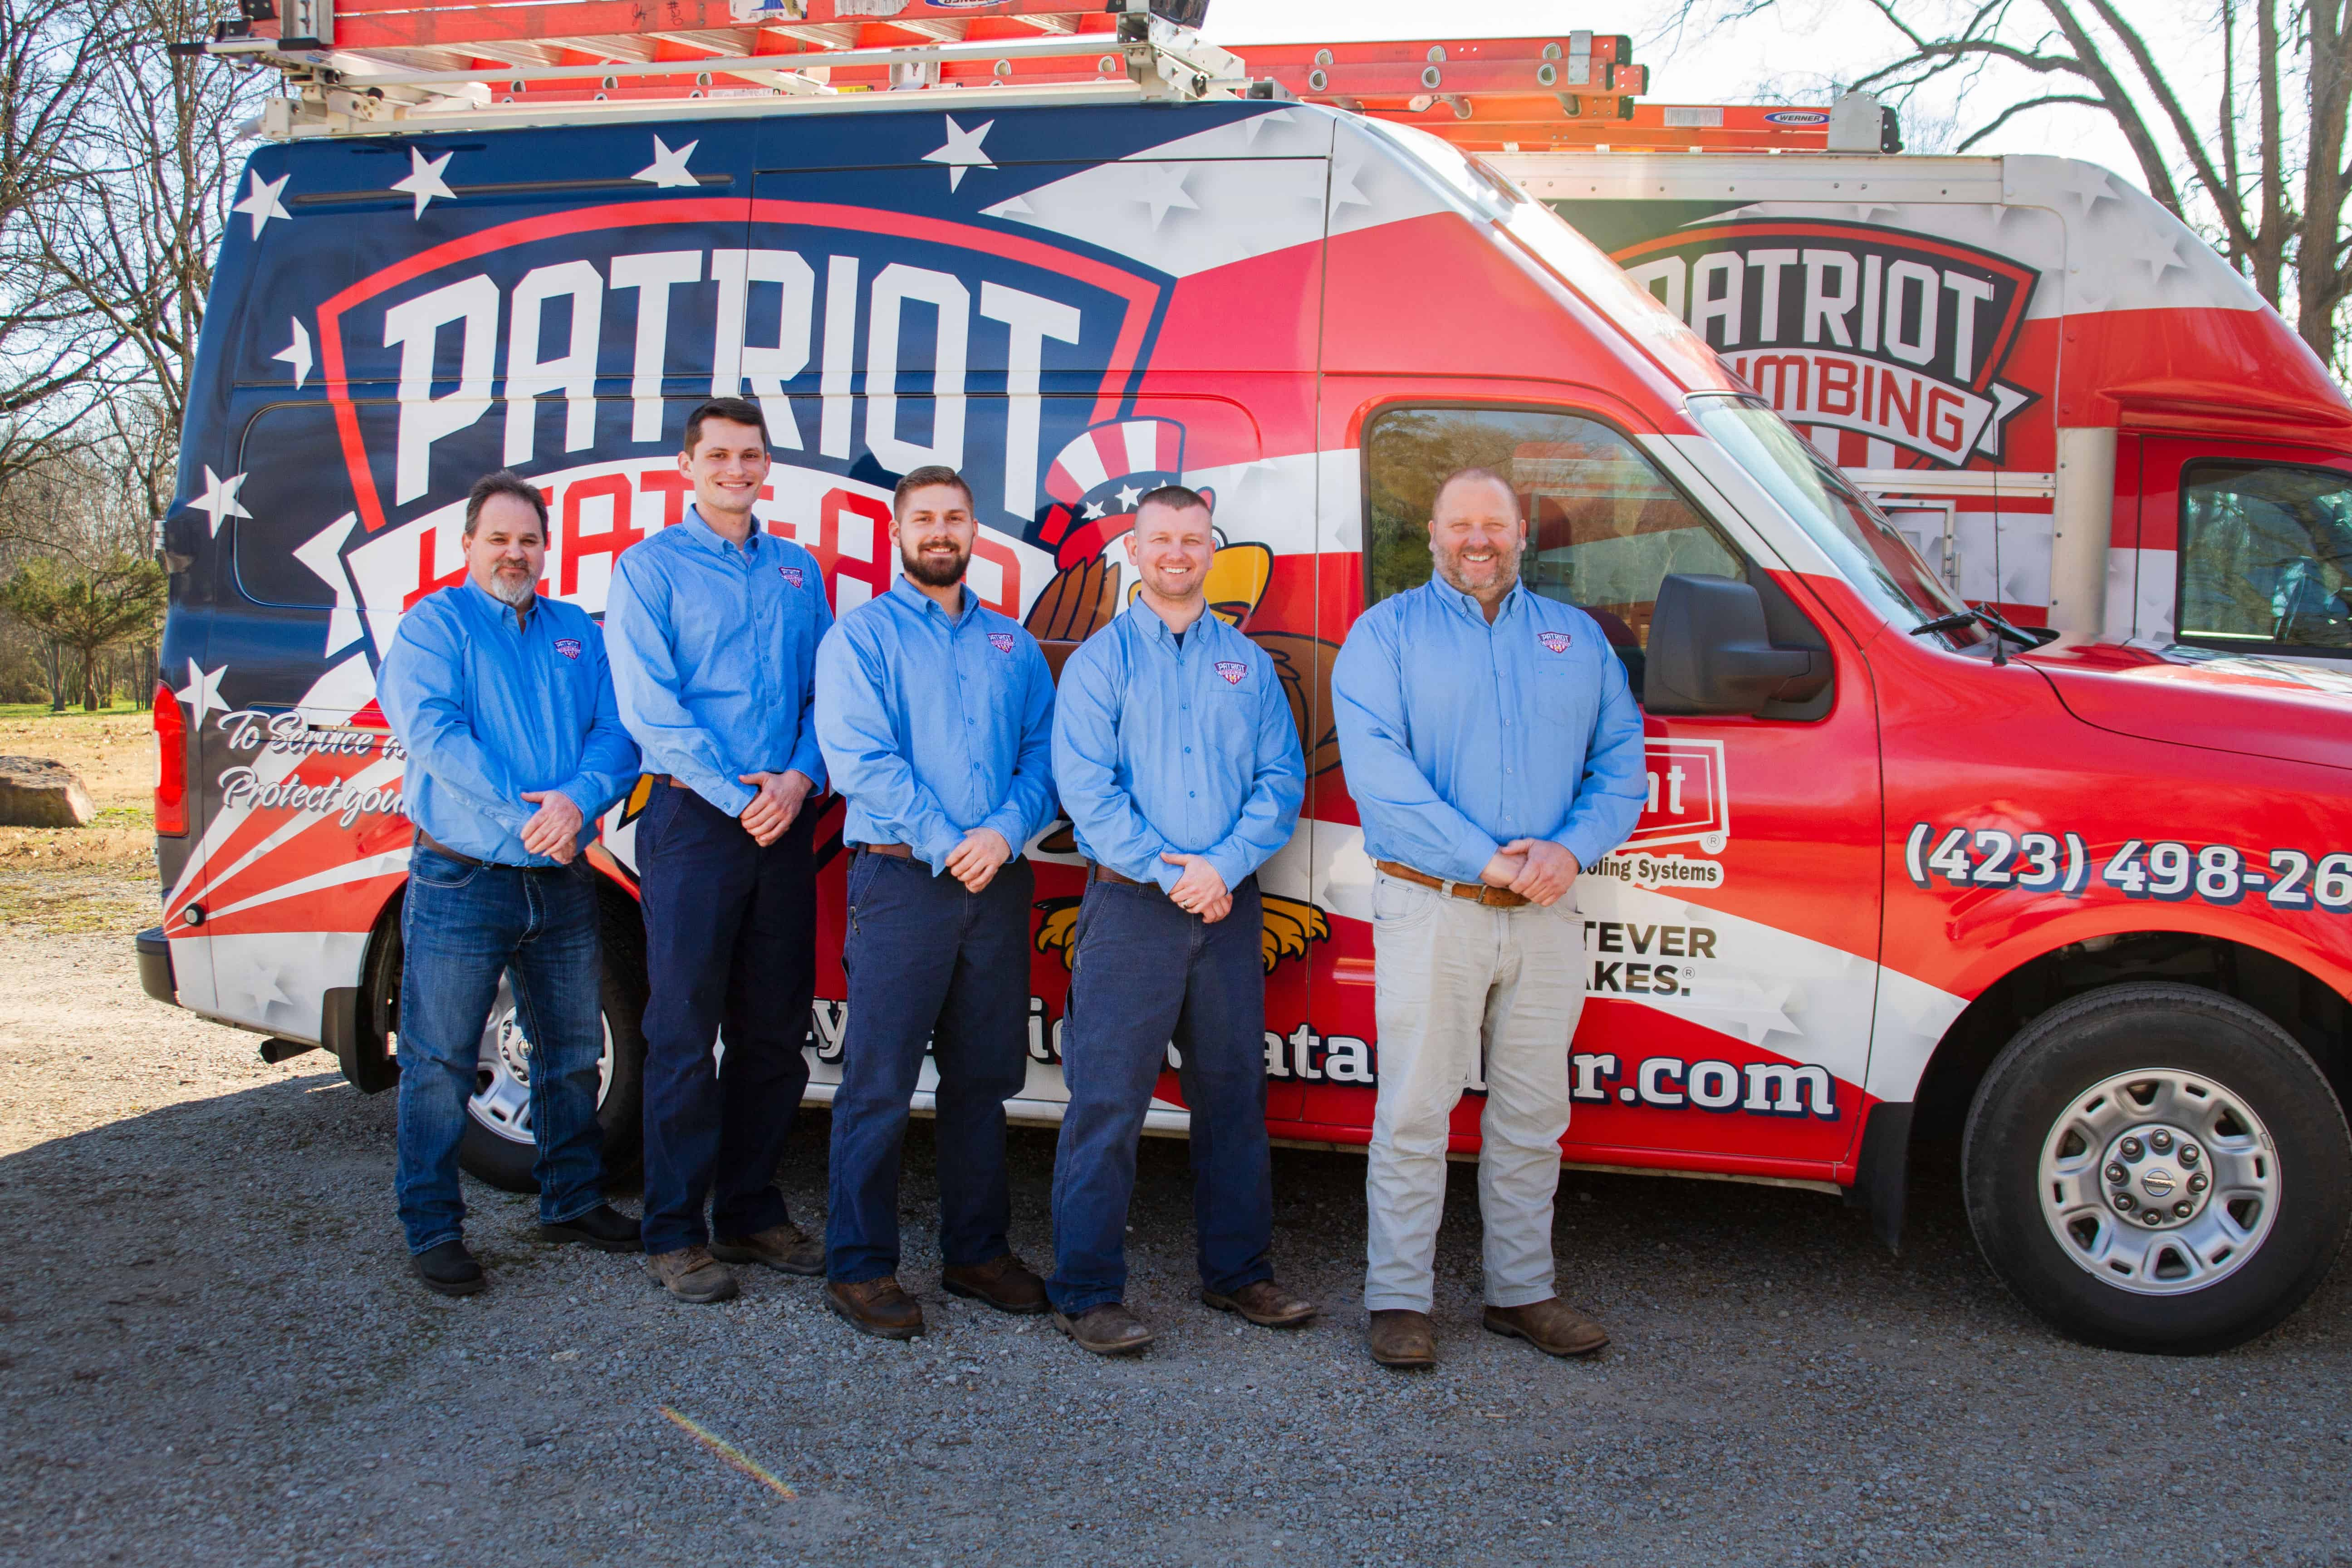 Lookout Mountain Plumber Patriot Plumbing Services TN